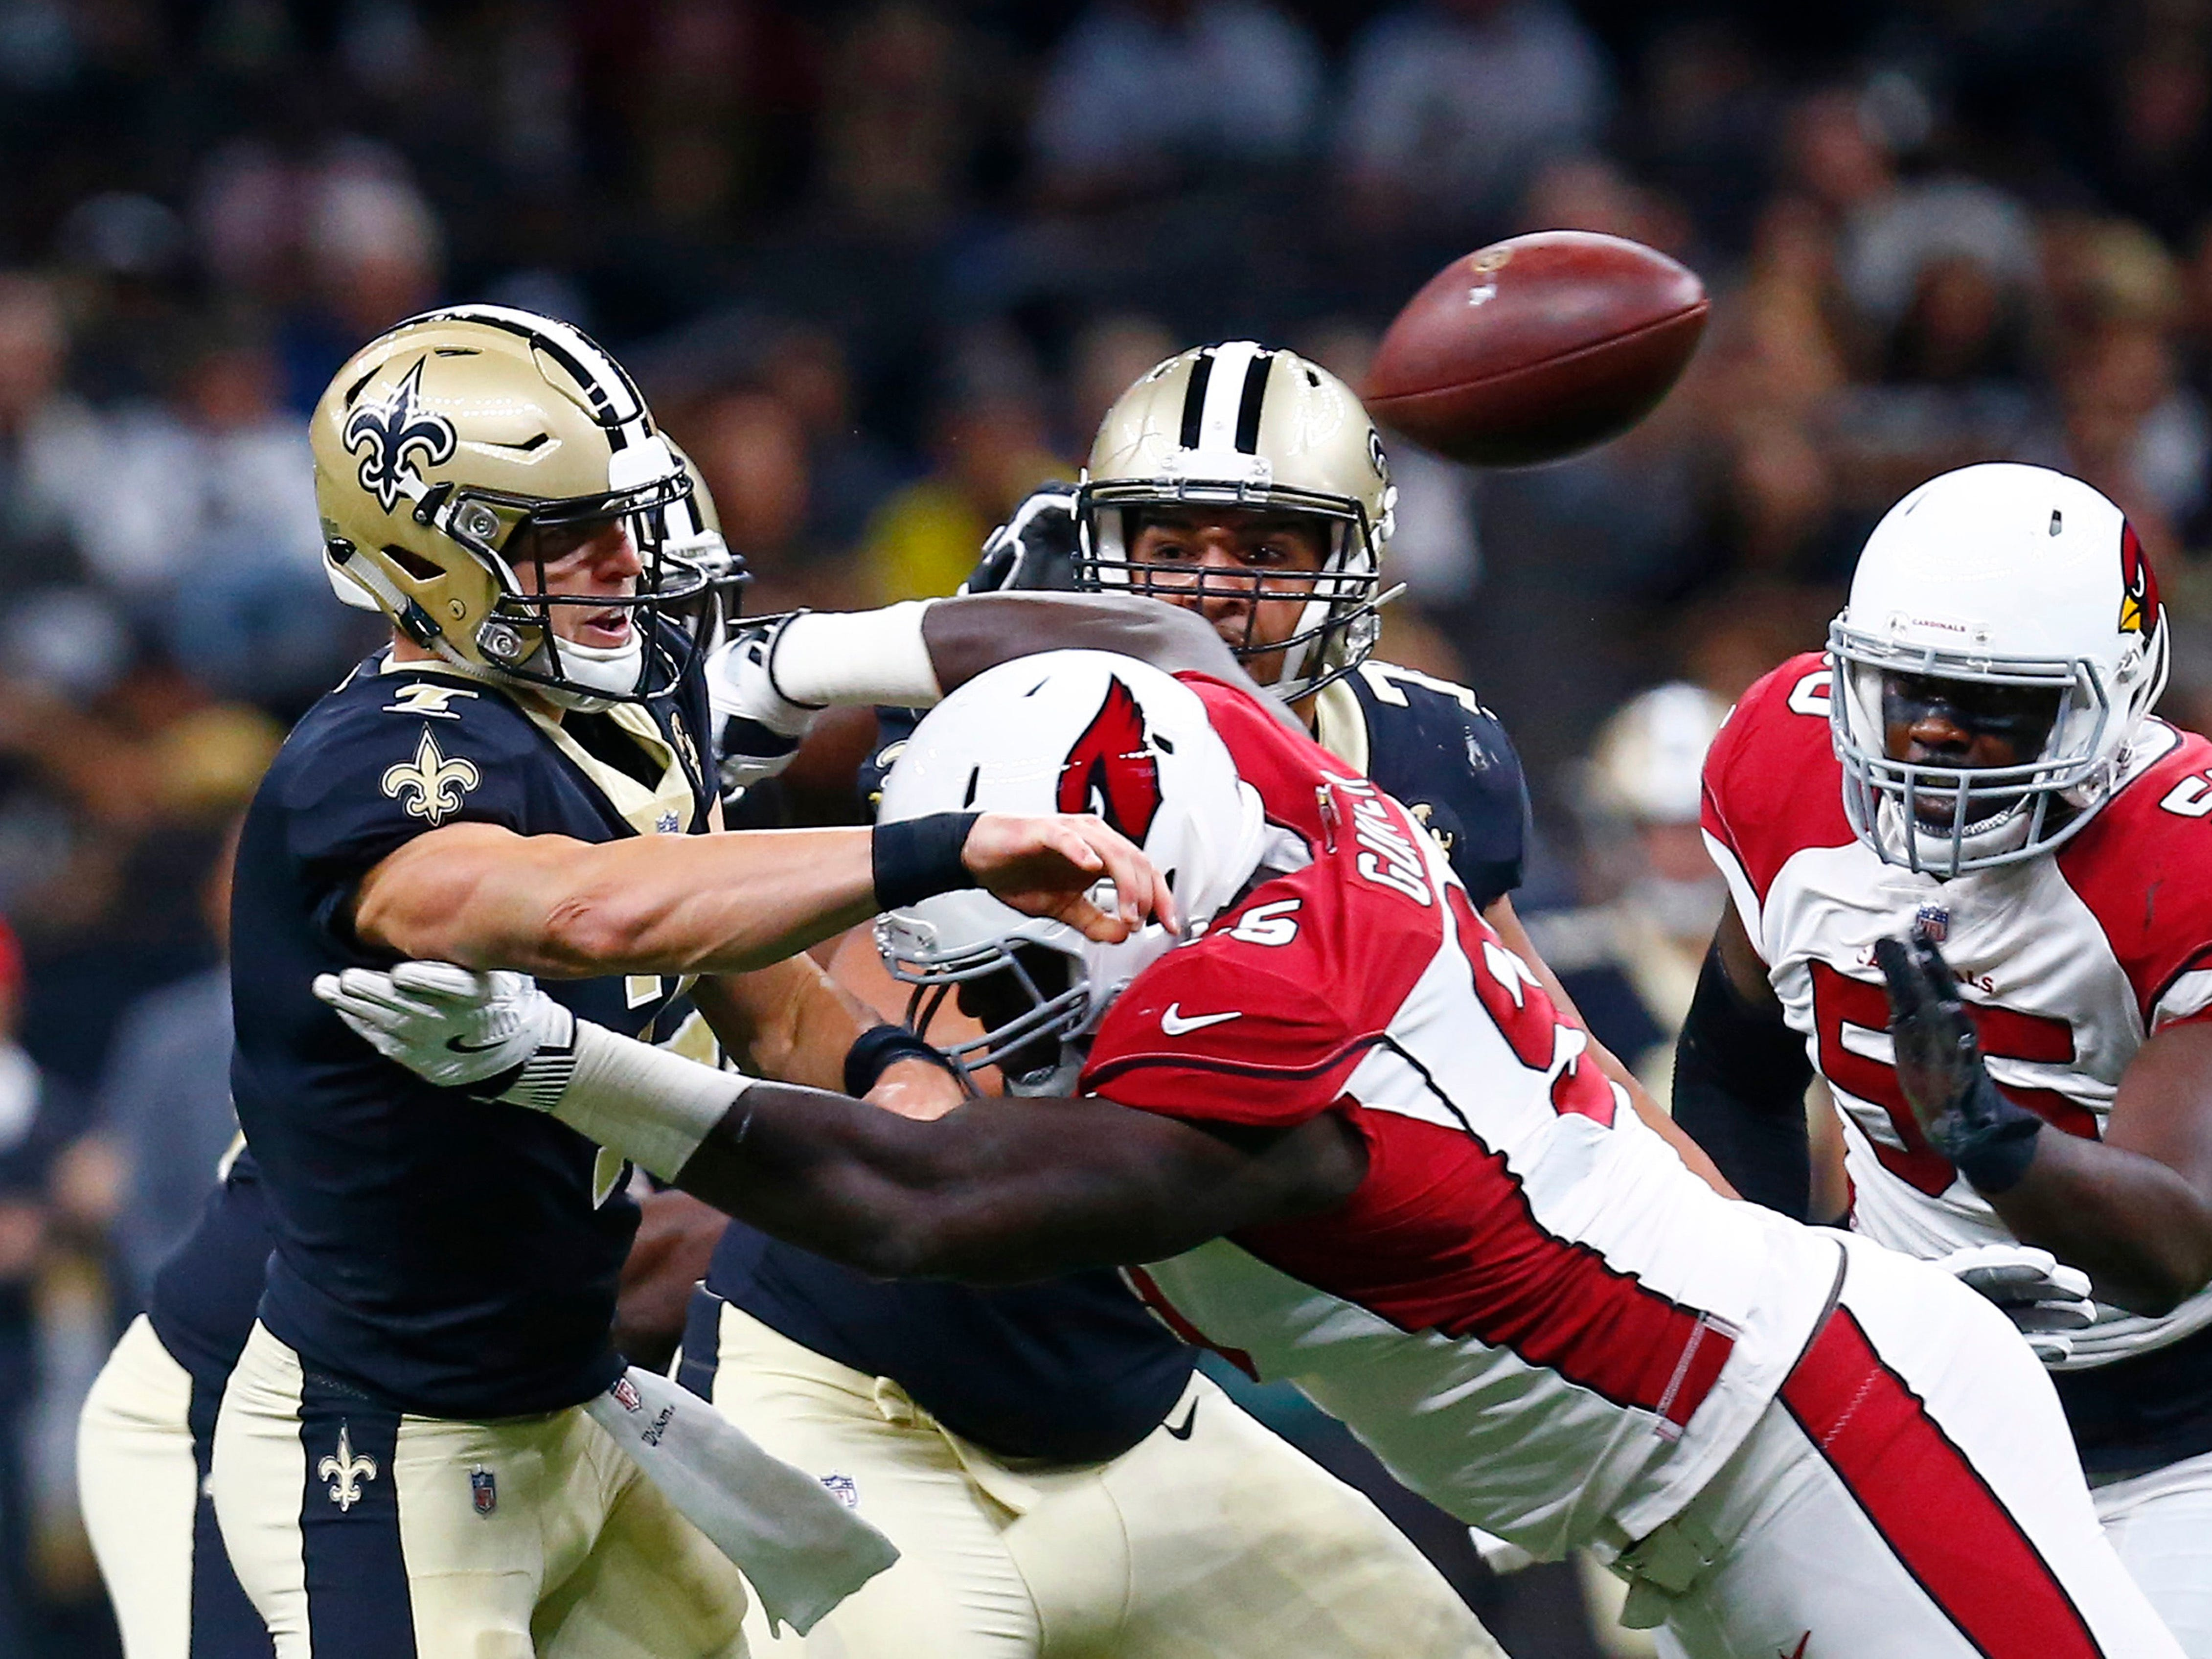 New Orleans Saints quarterback Taysom Hill (7) passes under pressure from Arizona Cardinals defensive tackle Rodney Gunter in the first half of an NFL preseason football game in New Orleans, Friday, Aug. 17, 2018.